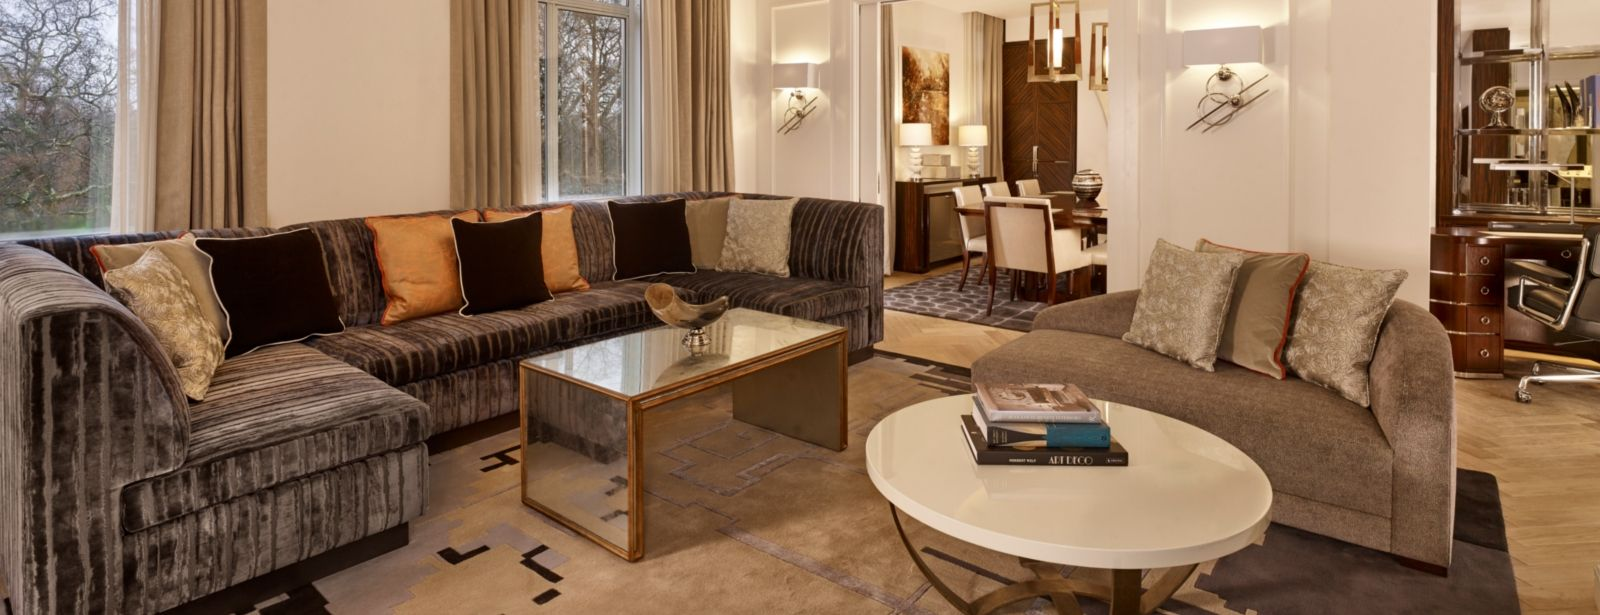 presidential-suite-living-room-sheraton-grand-park-lane-hotel-london-piccadilly-mayfair